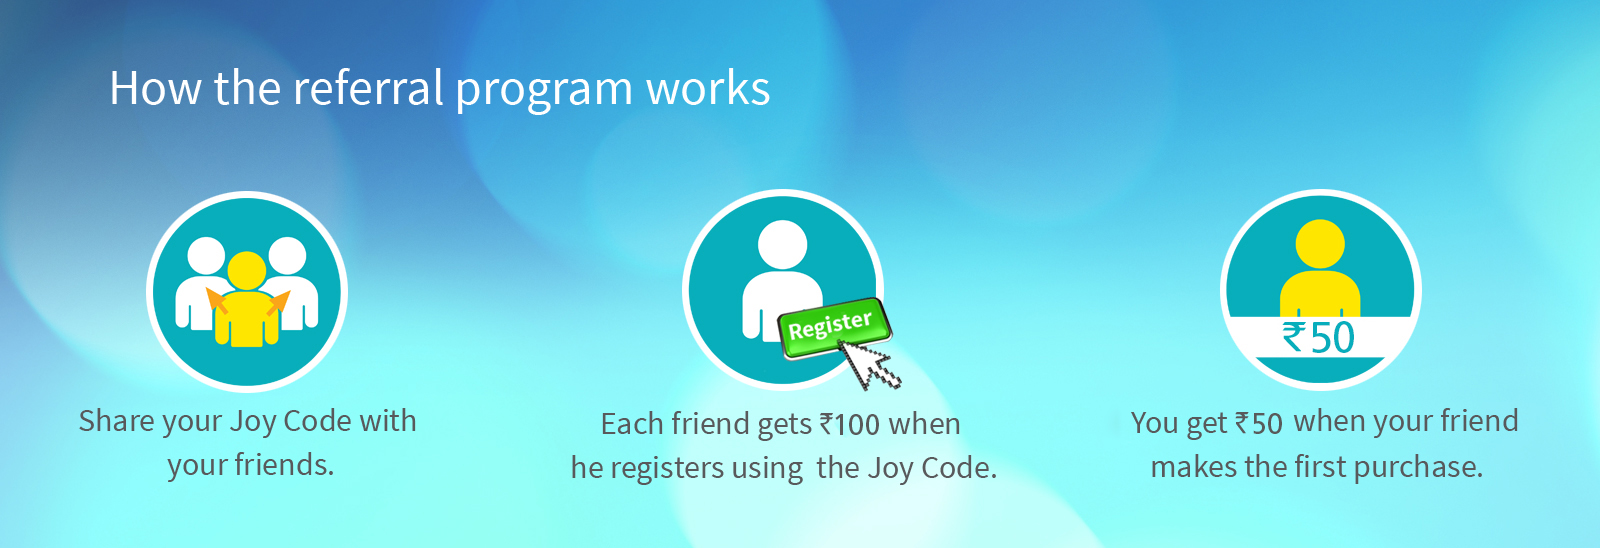 How referral program works